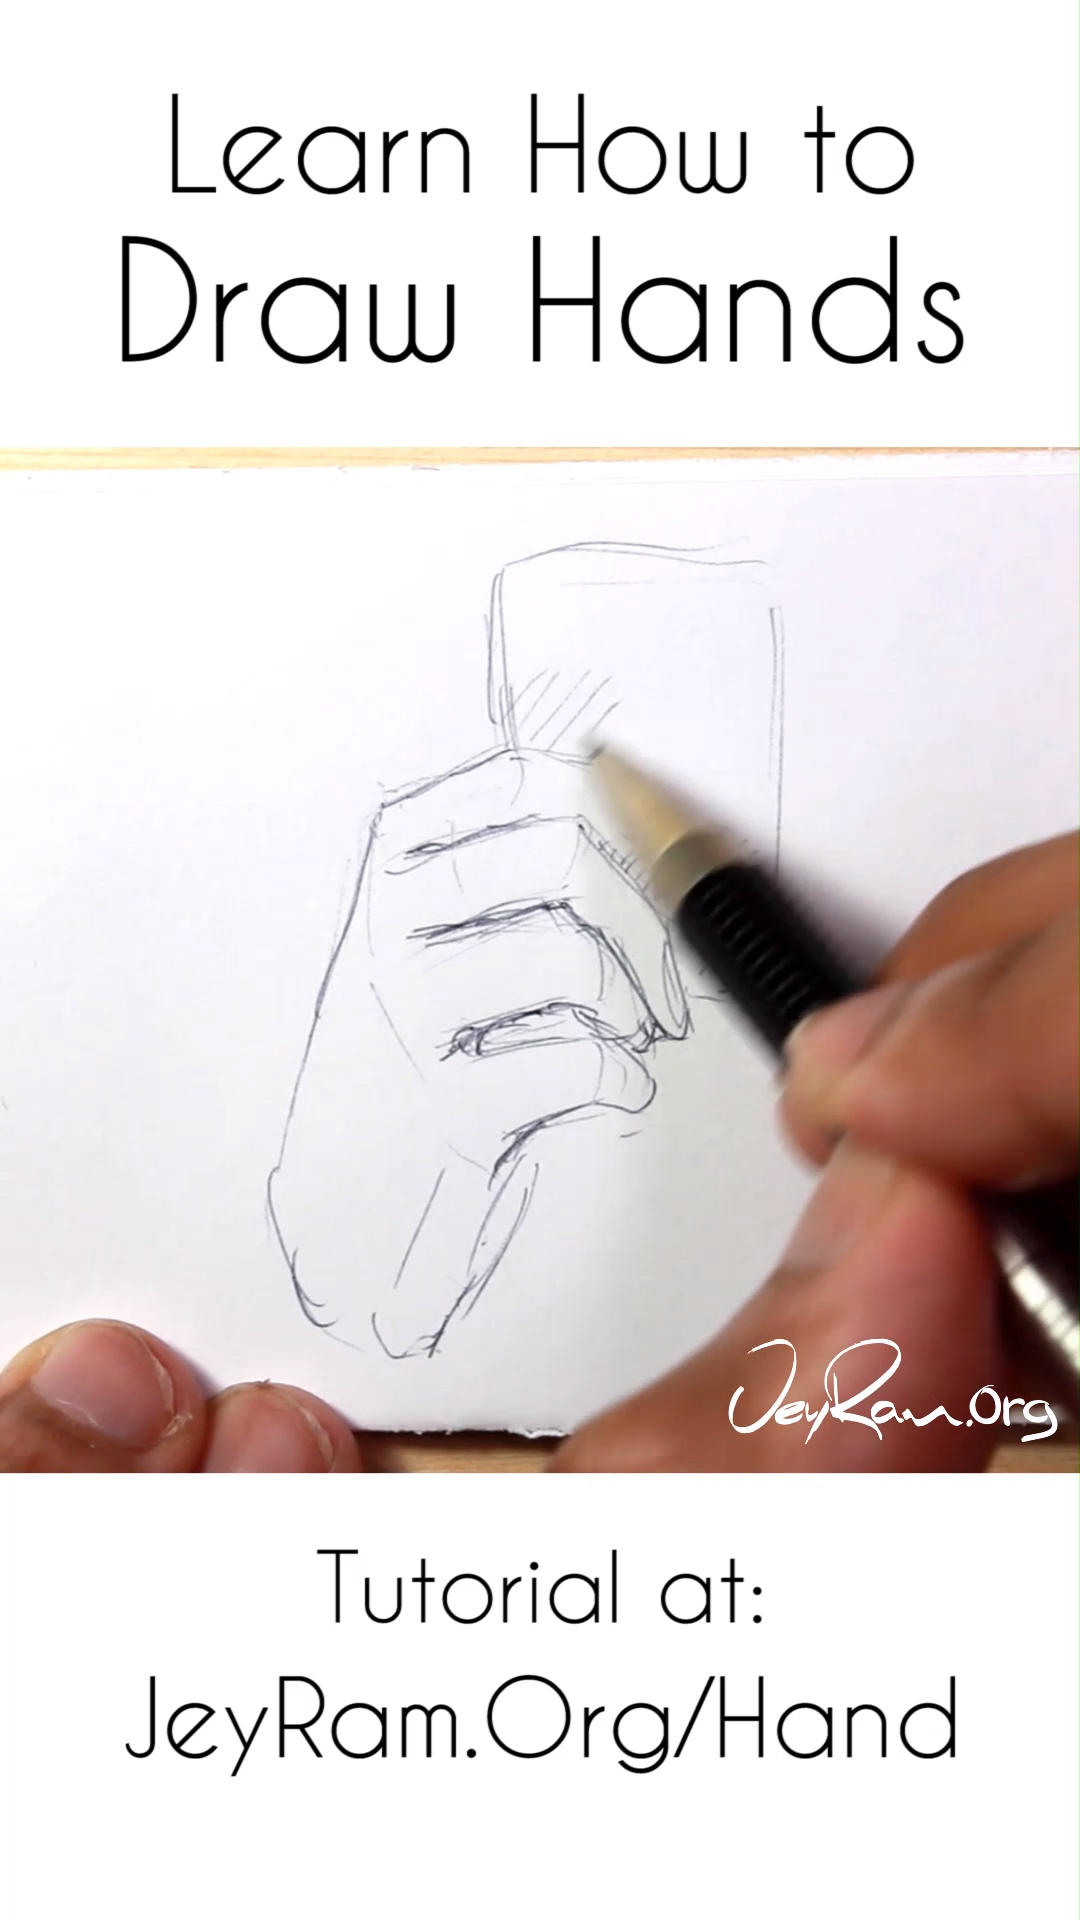 Learn How To Draw Hands Tutorial Video How To Draw Hands Drawings Hands Tutorial